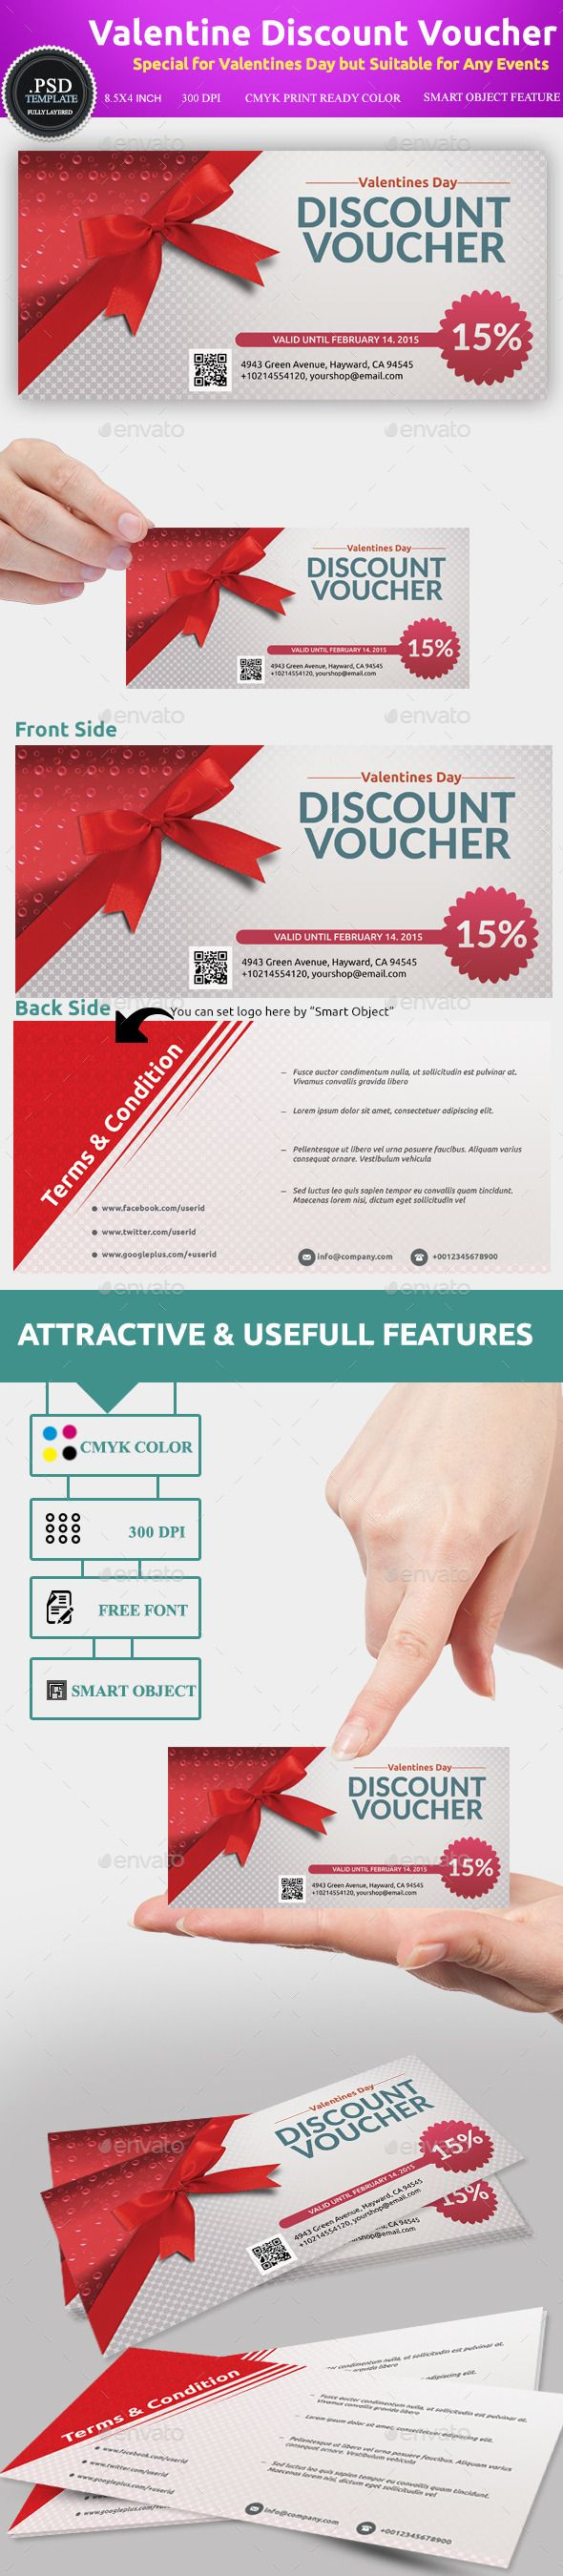 Valentines Discount Voucher Template  http://graphicriver.net/item/valentines-discount-voucher-template/10020176